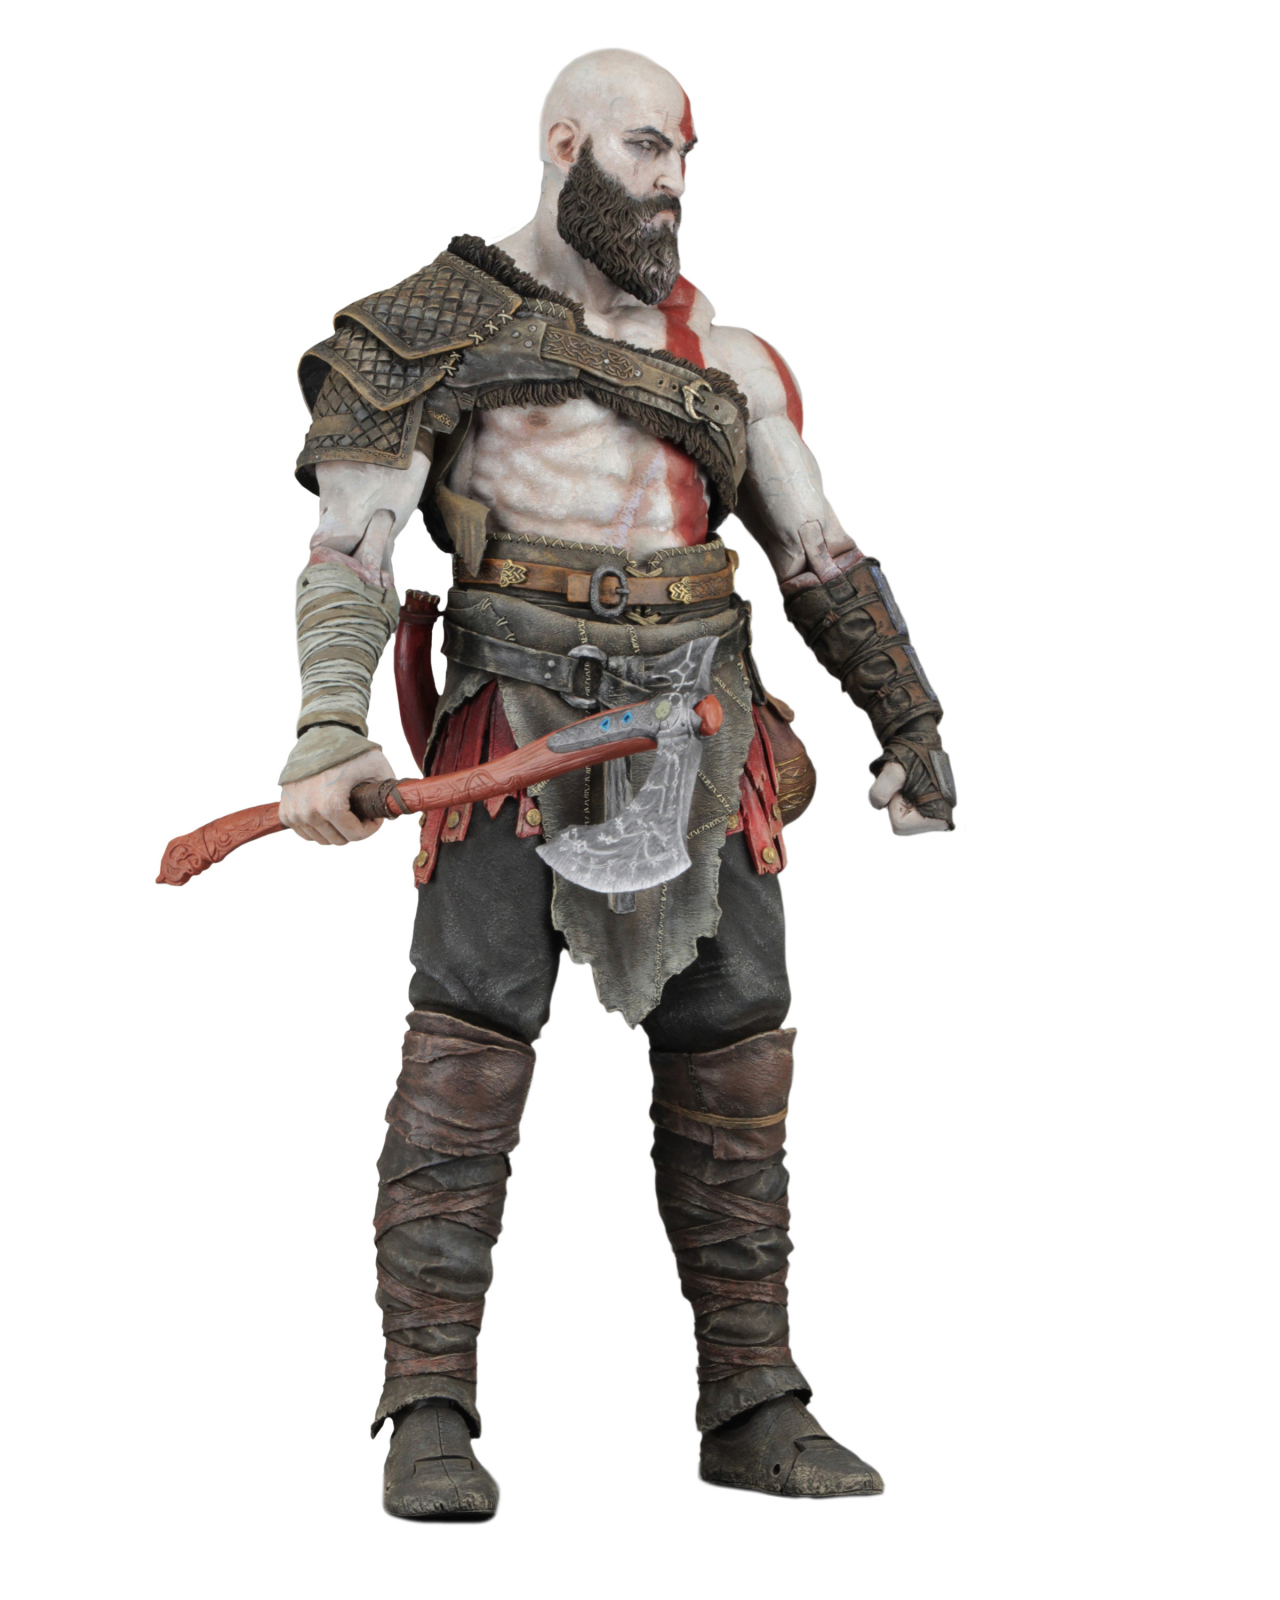 """God of War (2018) 7"""" Scale Action Figure Kratos by Neca"""